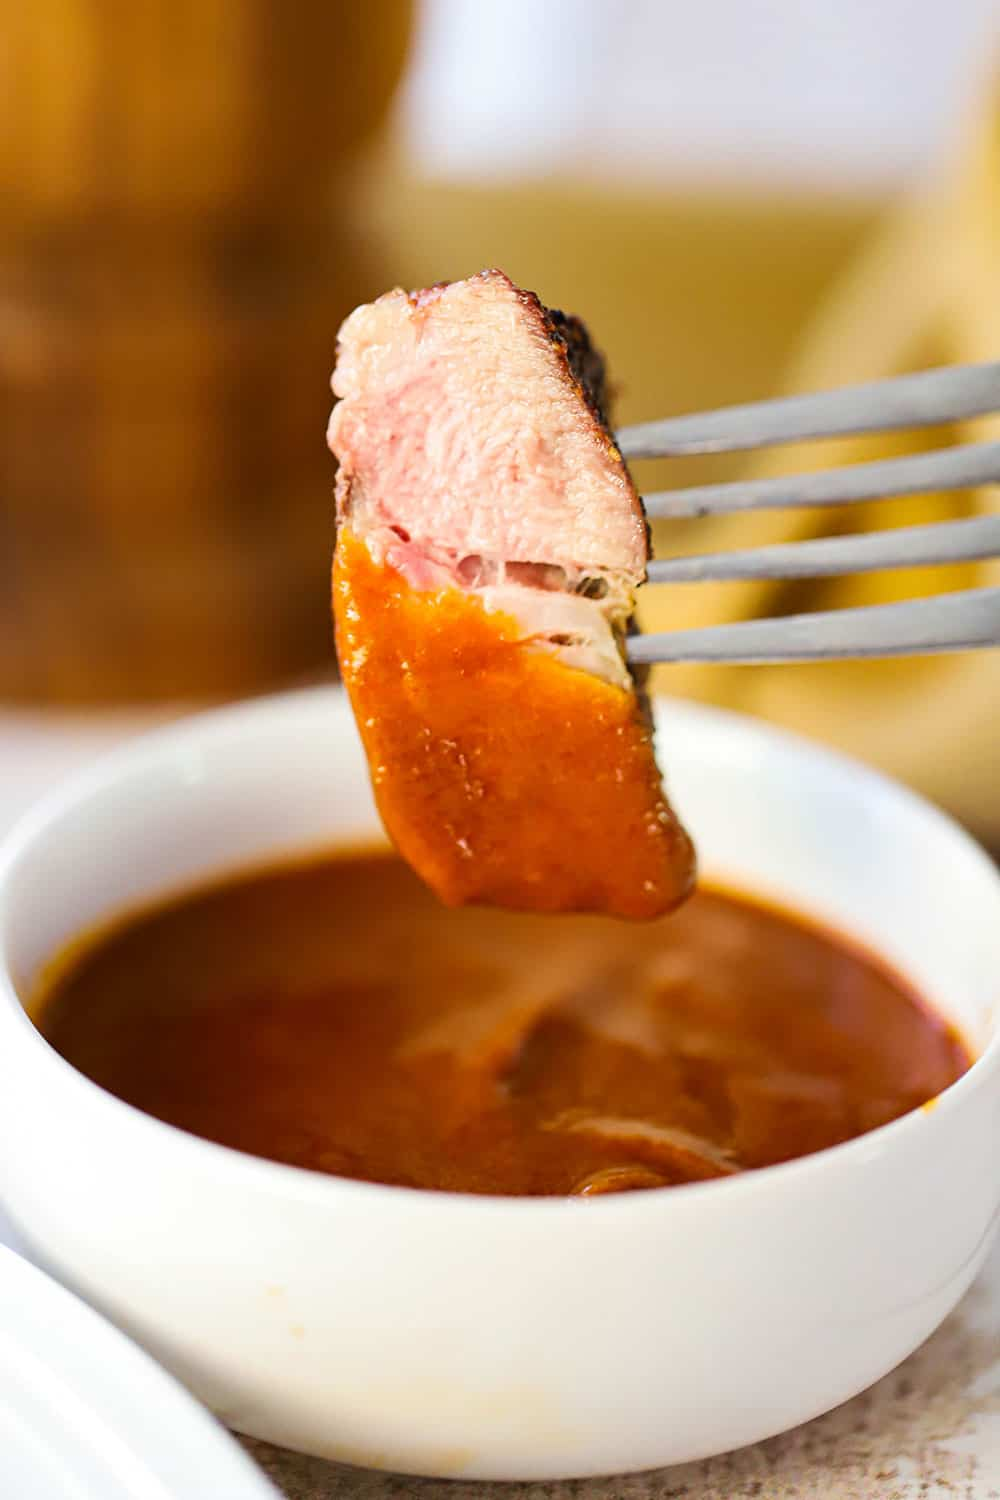 A fork with a slice of pork steak stuck into that is over a small white bowl of steak sauce that it has been dipped into.